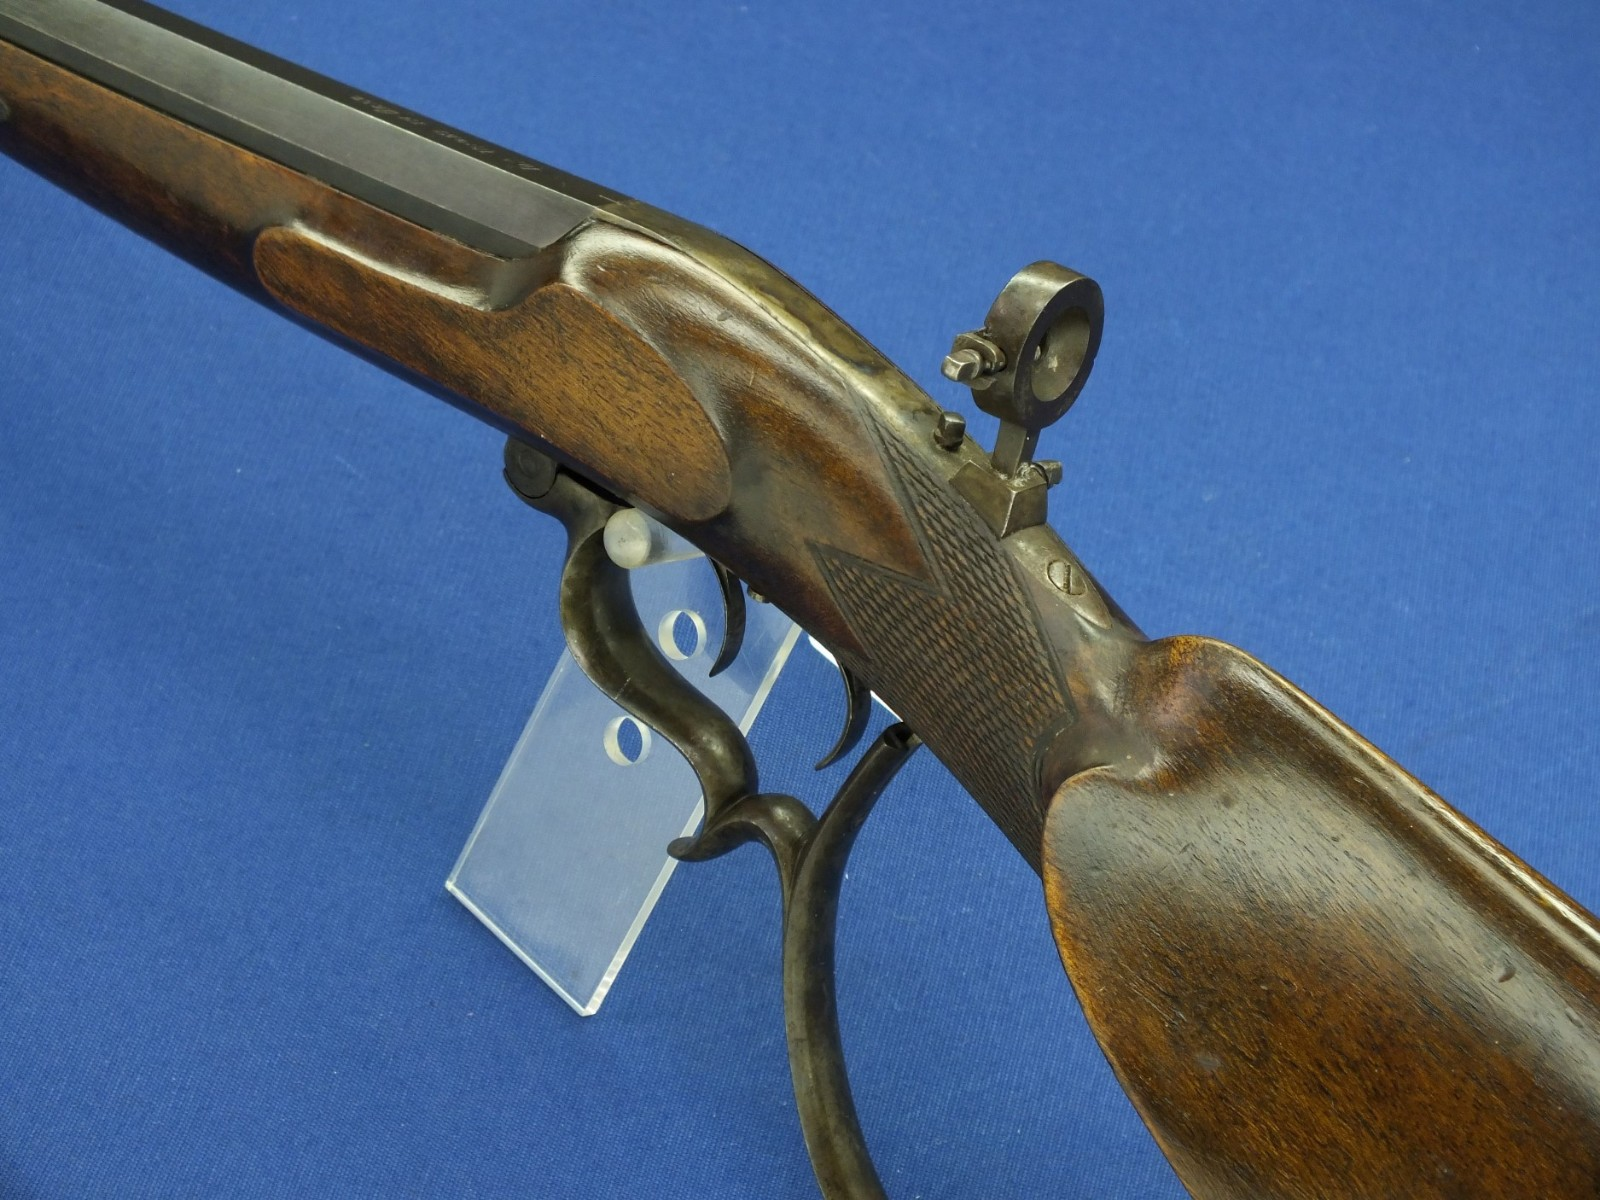 A very nice antique 19th Century Austrian Target Rifle with